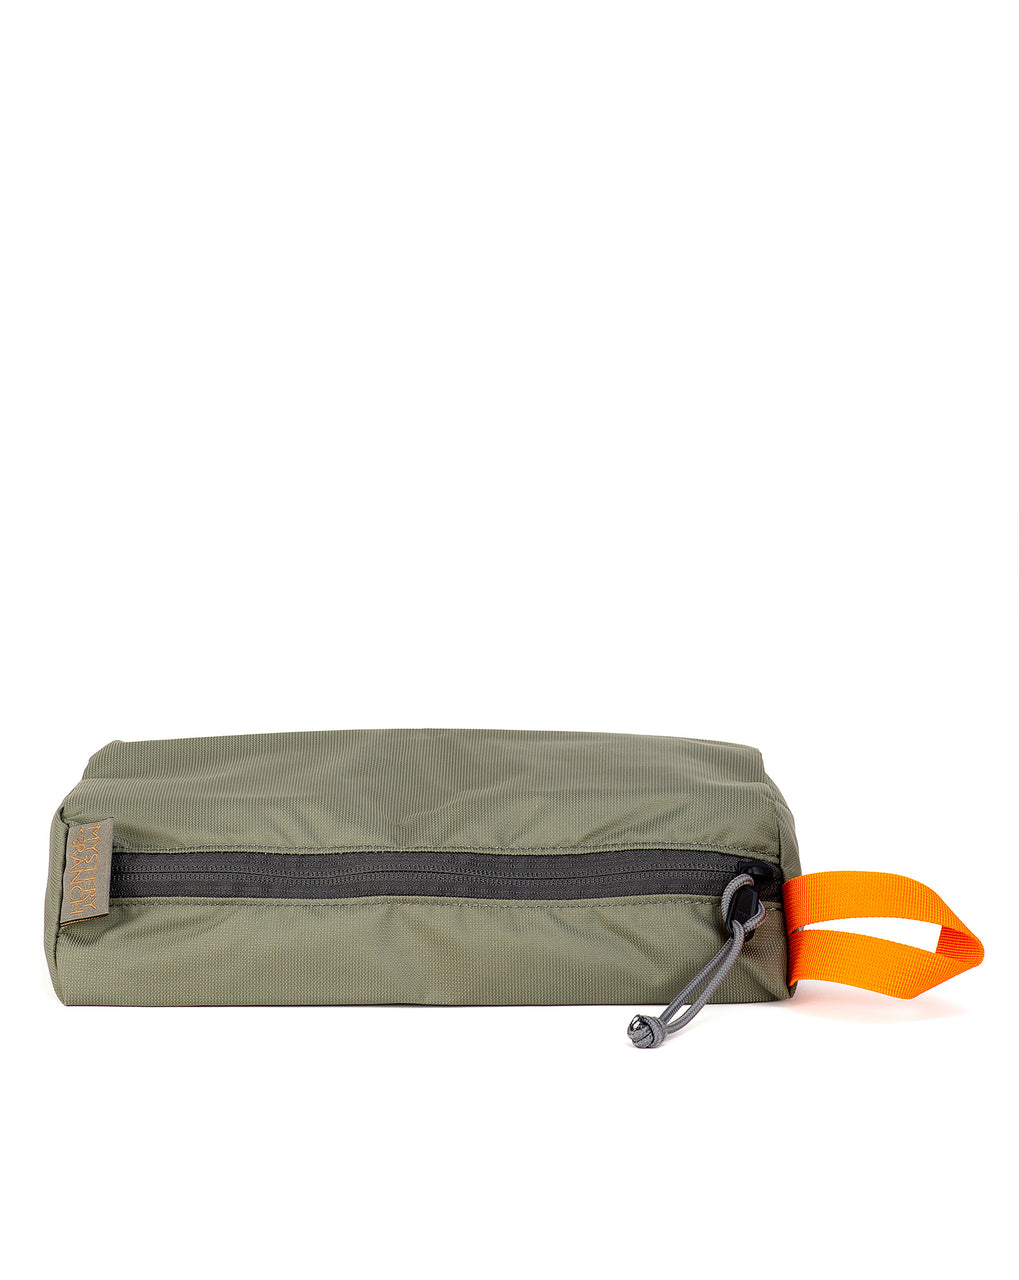 Mystery Ranch Zoid Bag Medium (Foliage)